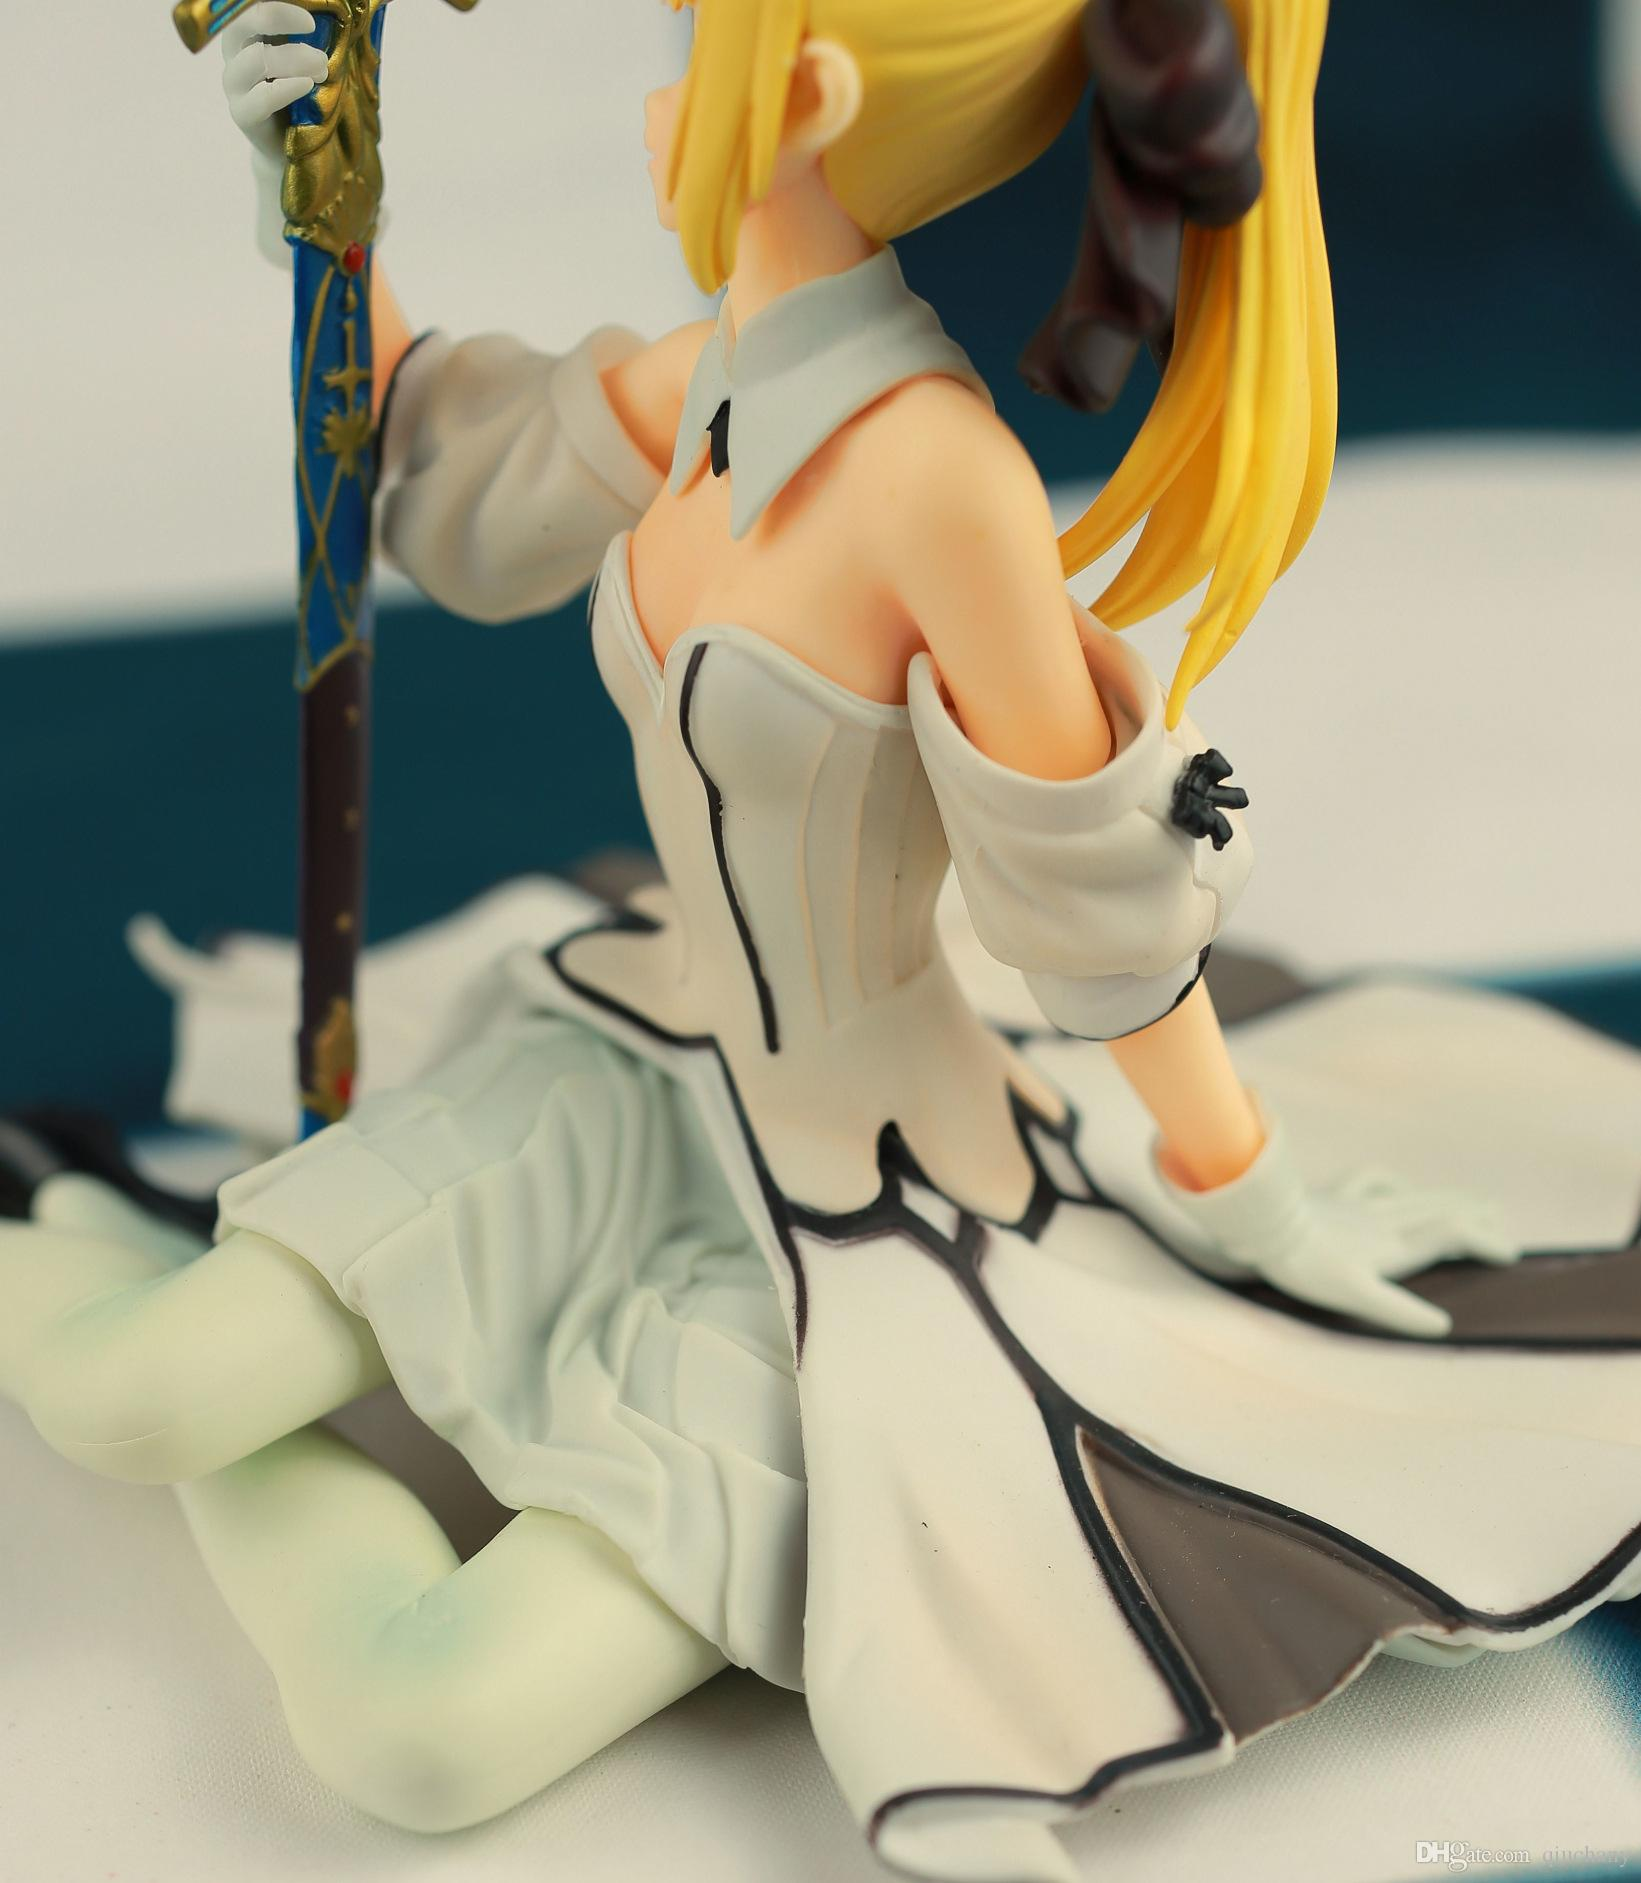 170602 Qiuchang Fate Stay Night 3 Generations Altria Pendragon Saber Lily Action Figure Toy Collection Hobby Gift Doll